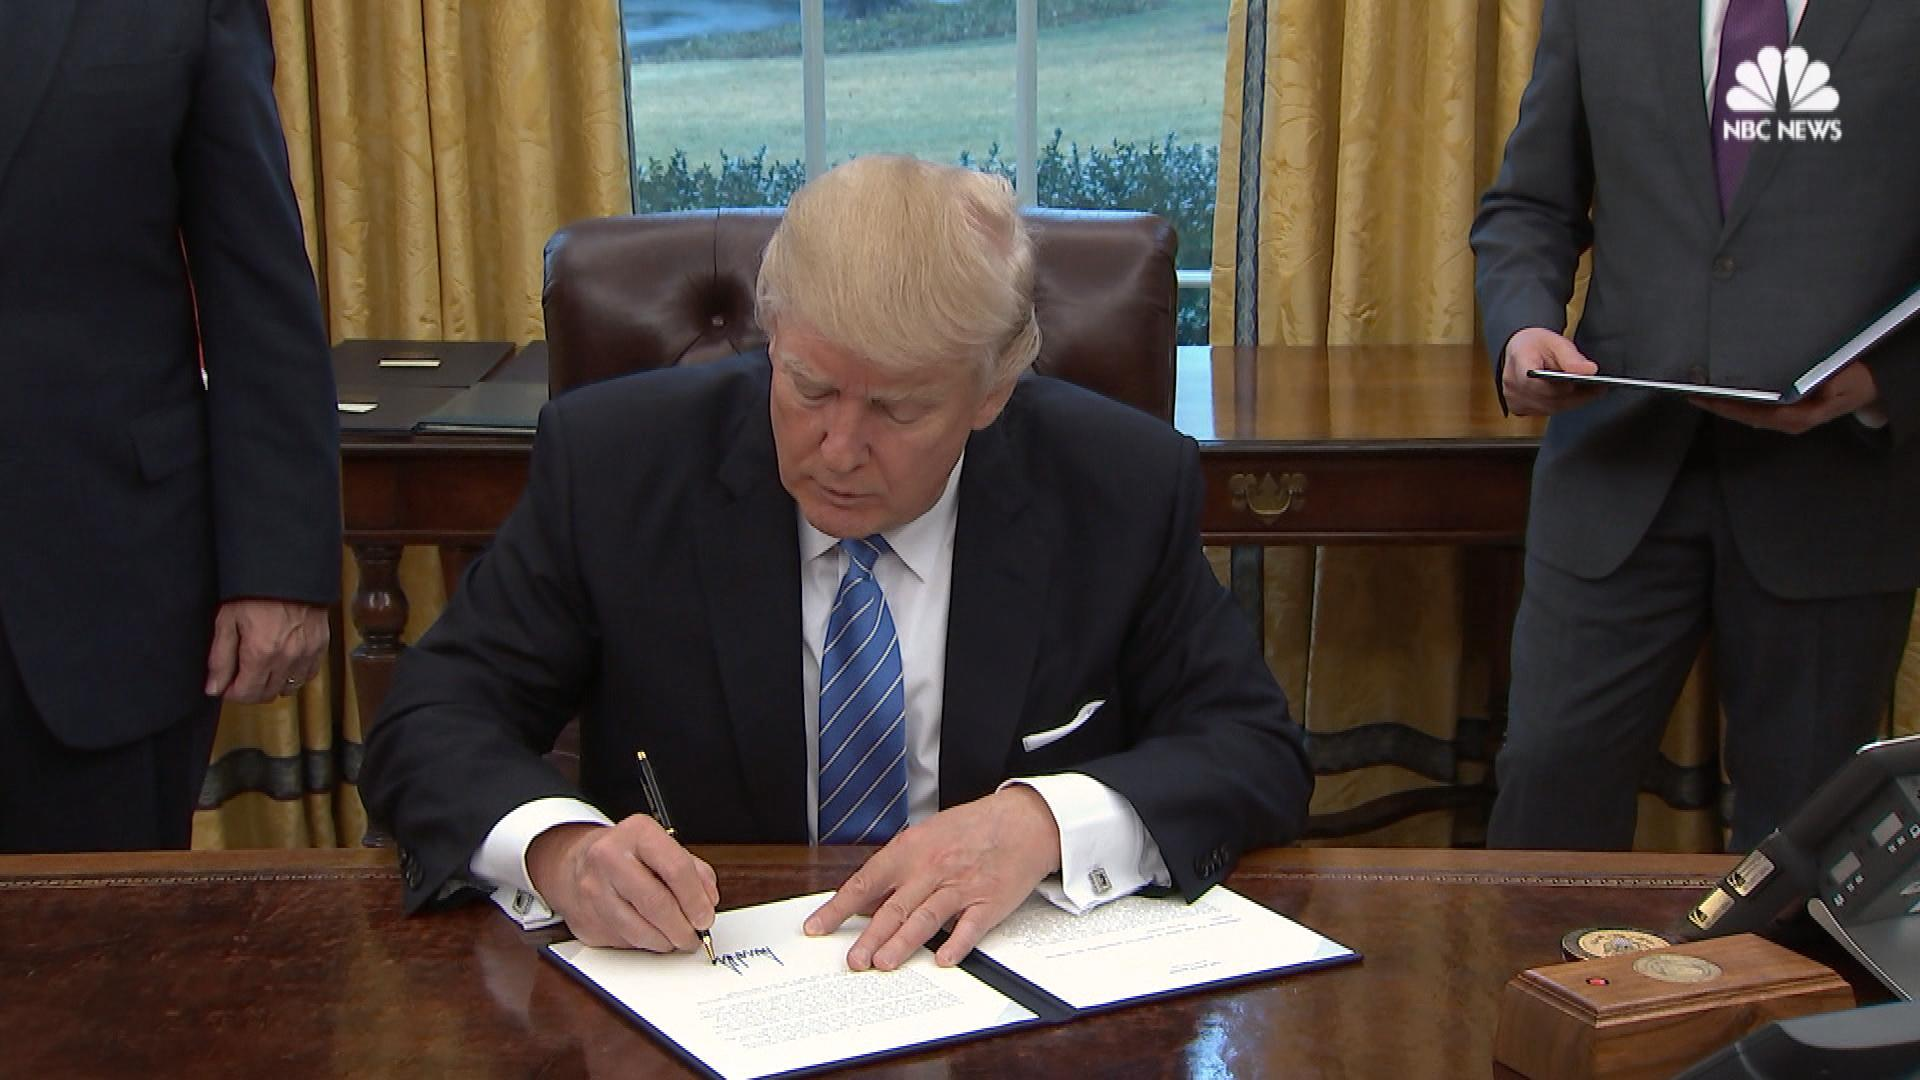 Donald Trump's First Six Days in Office: Here's What He's Done